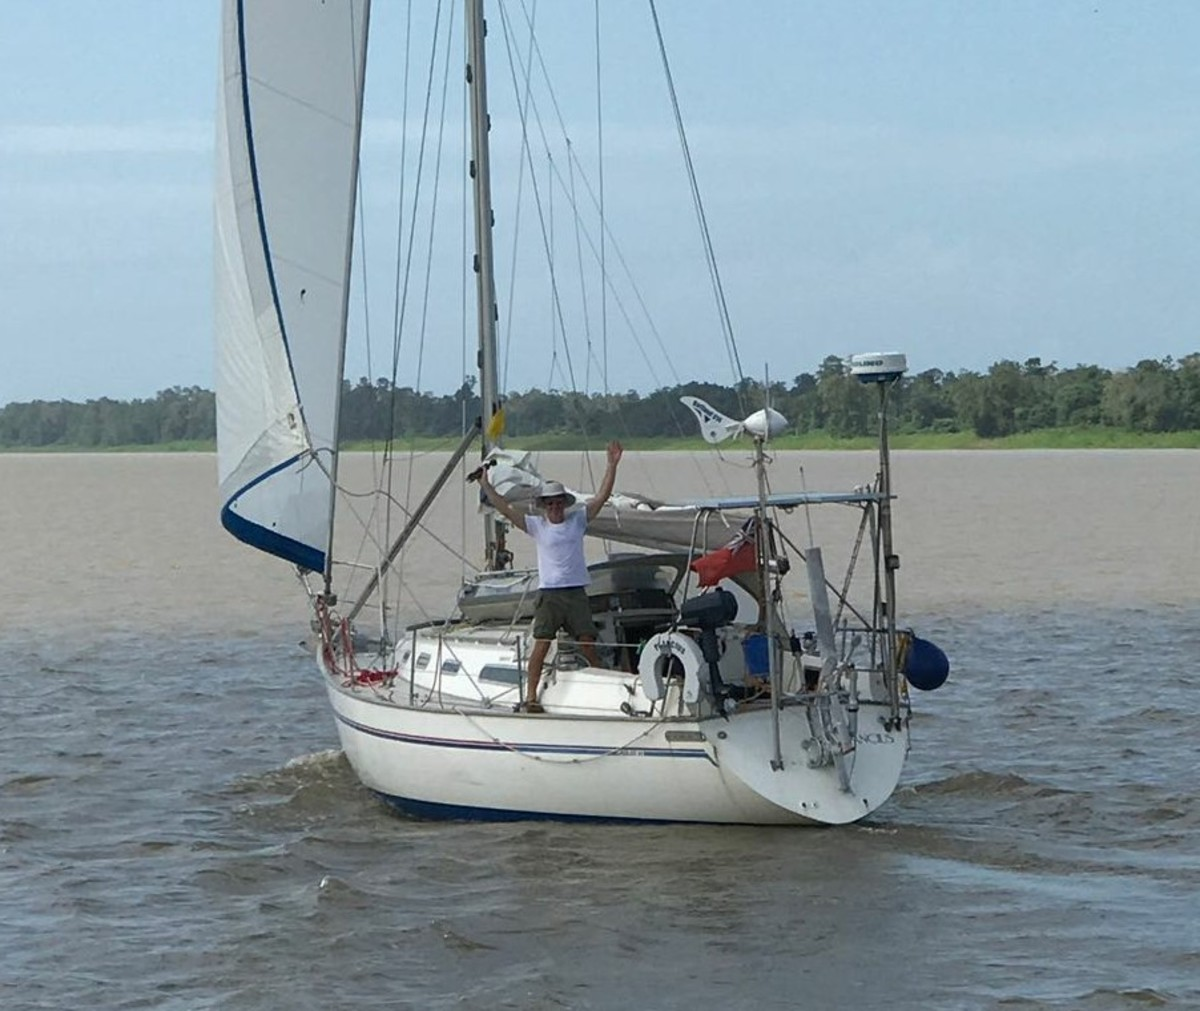 On the Suriname River at Dombourg